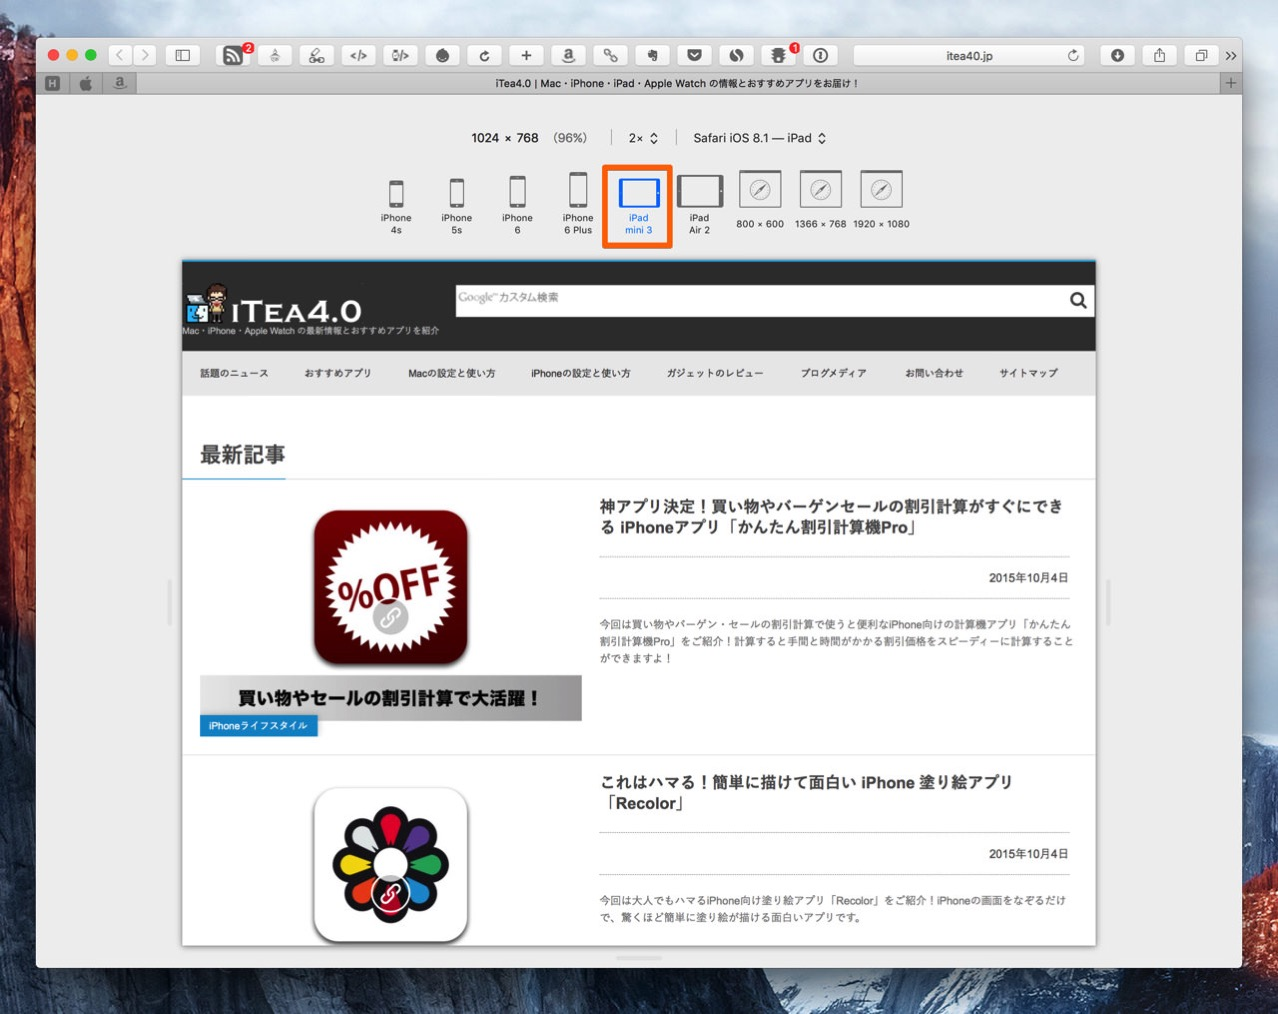 Safari 9 responsive design mode5